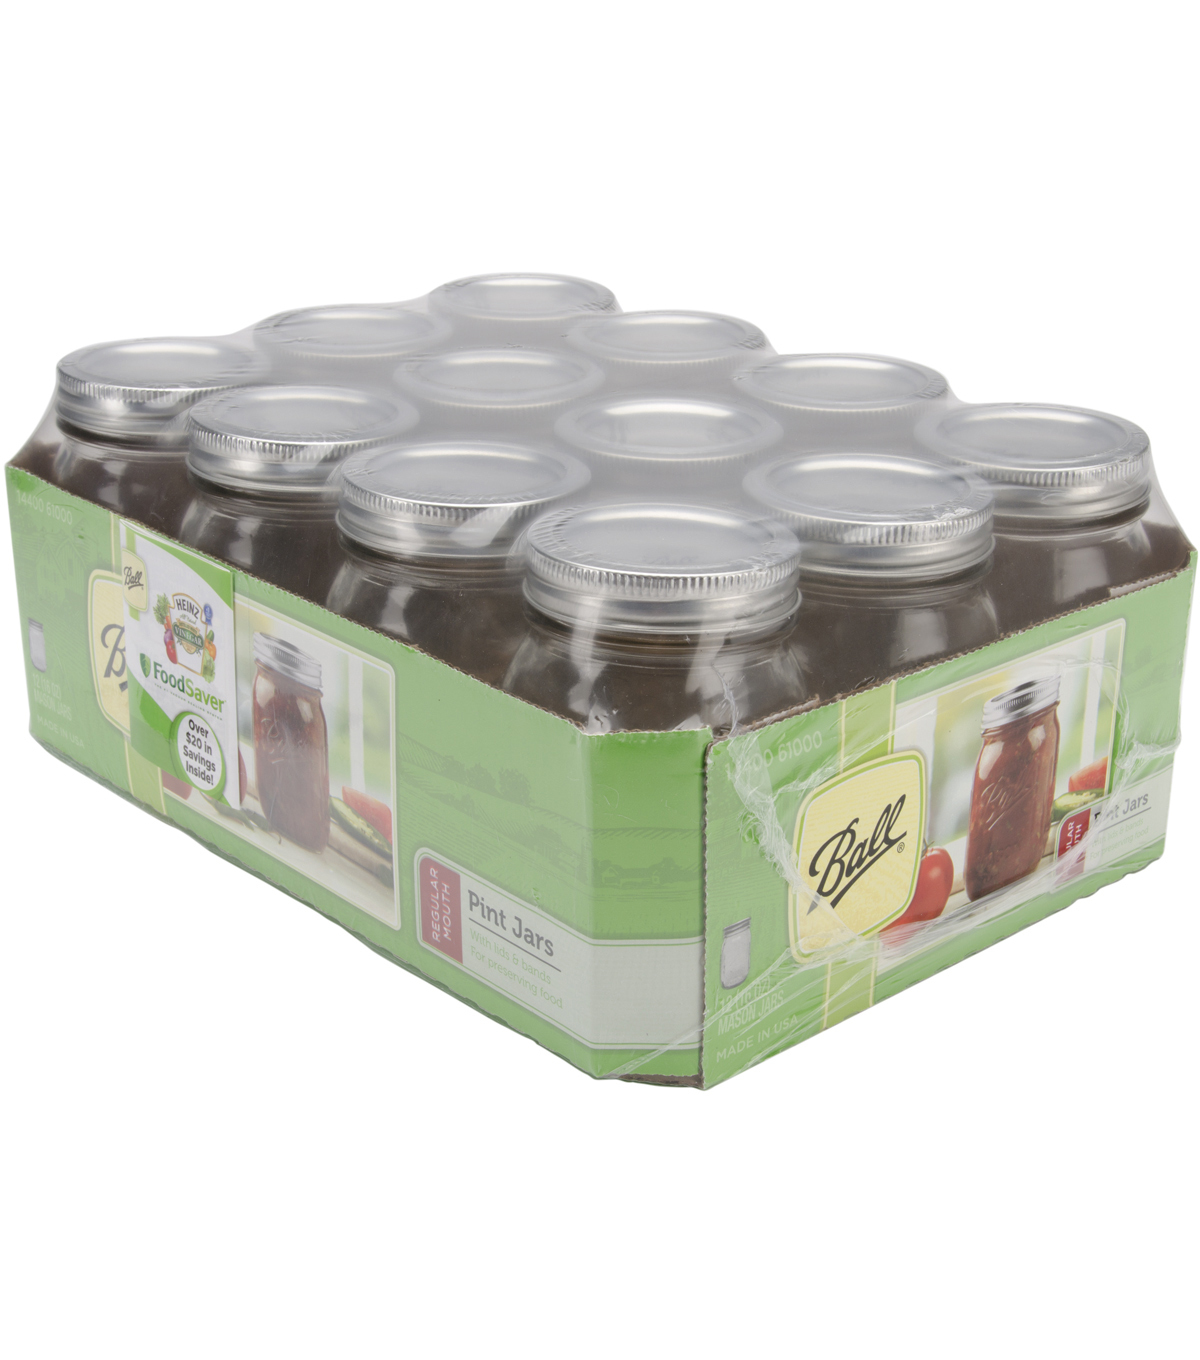 Ball Regular Mouth Canning Jar 12/Pkg-Pint